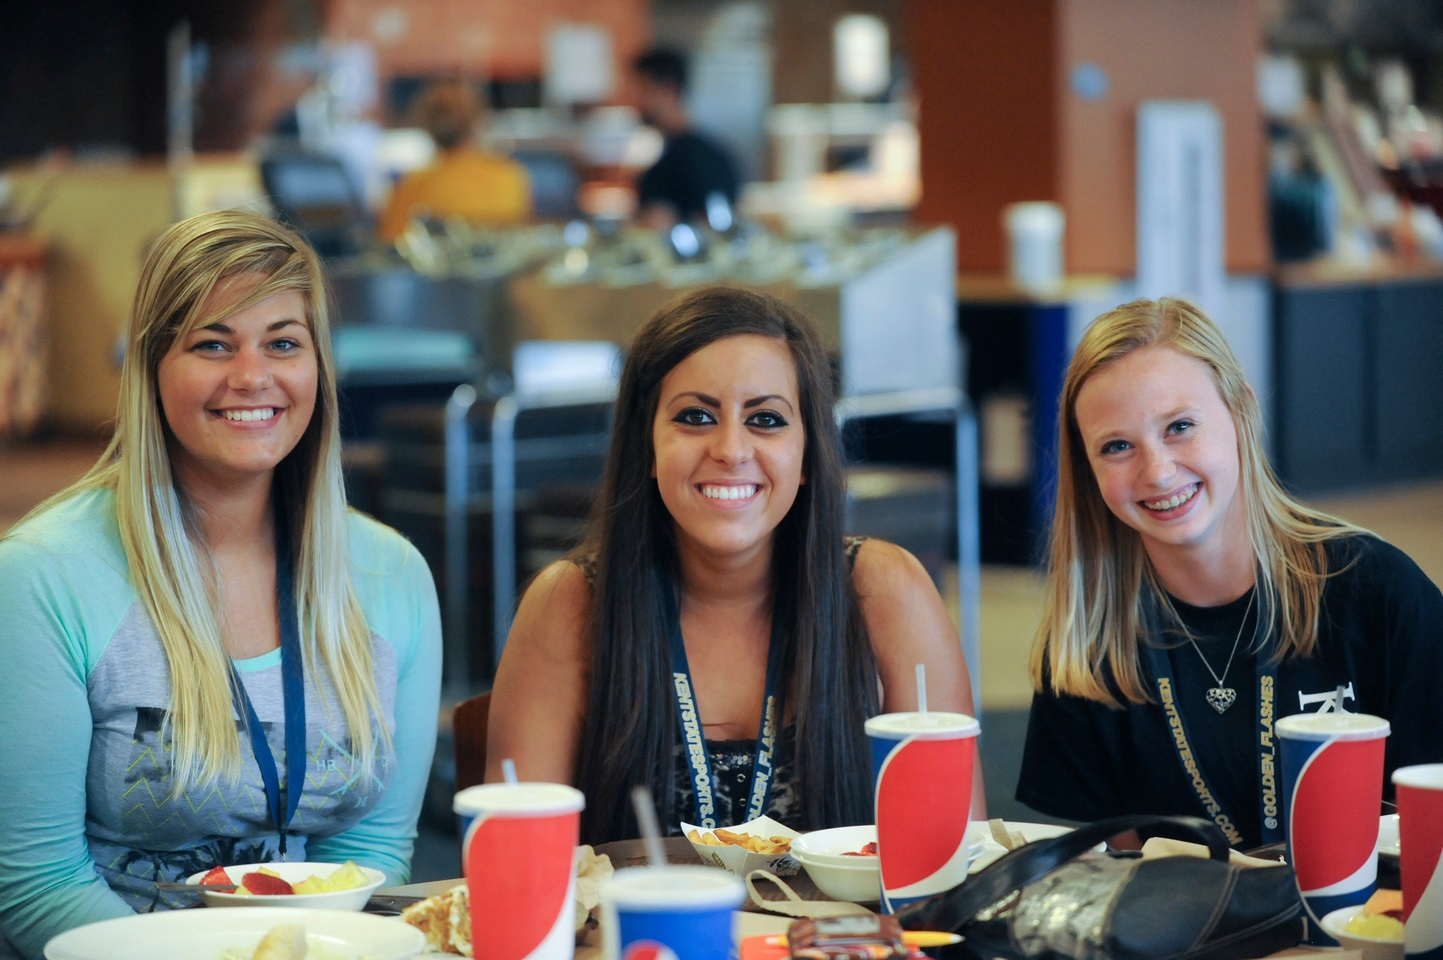 Photo 1 from Dining Services - students at lunch